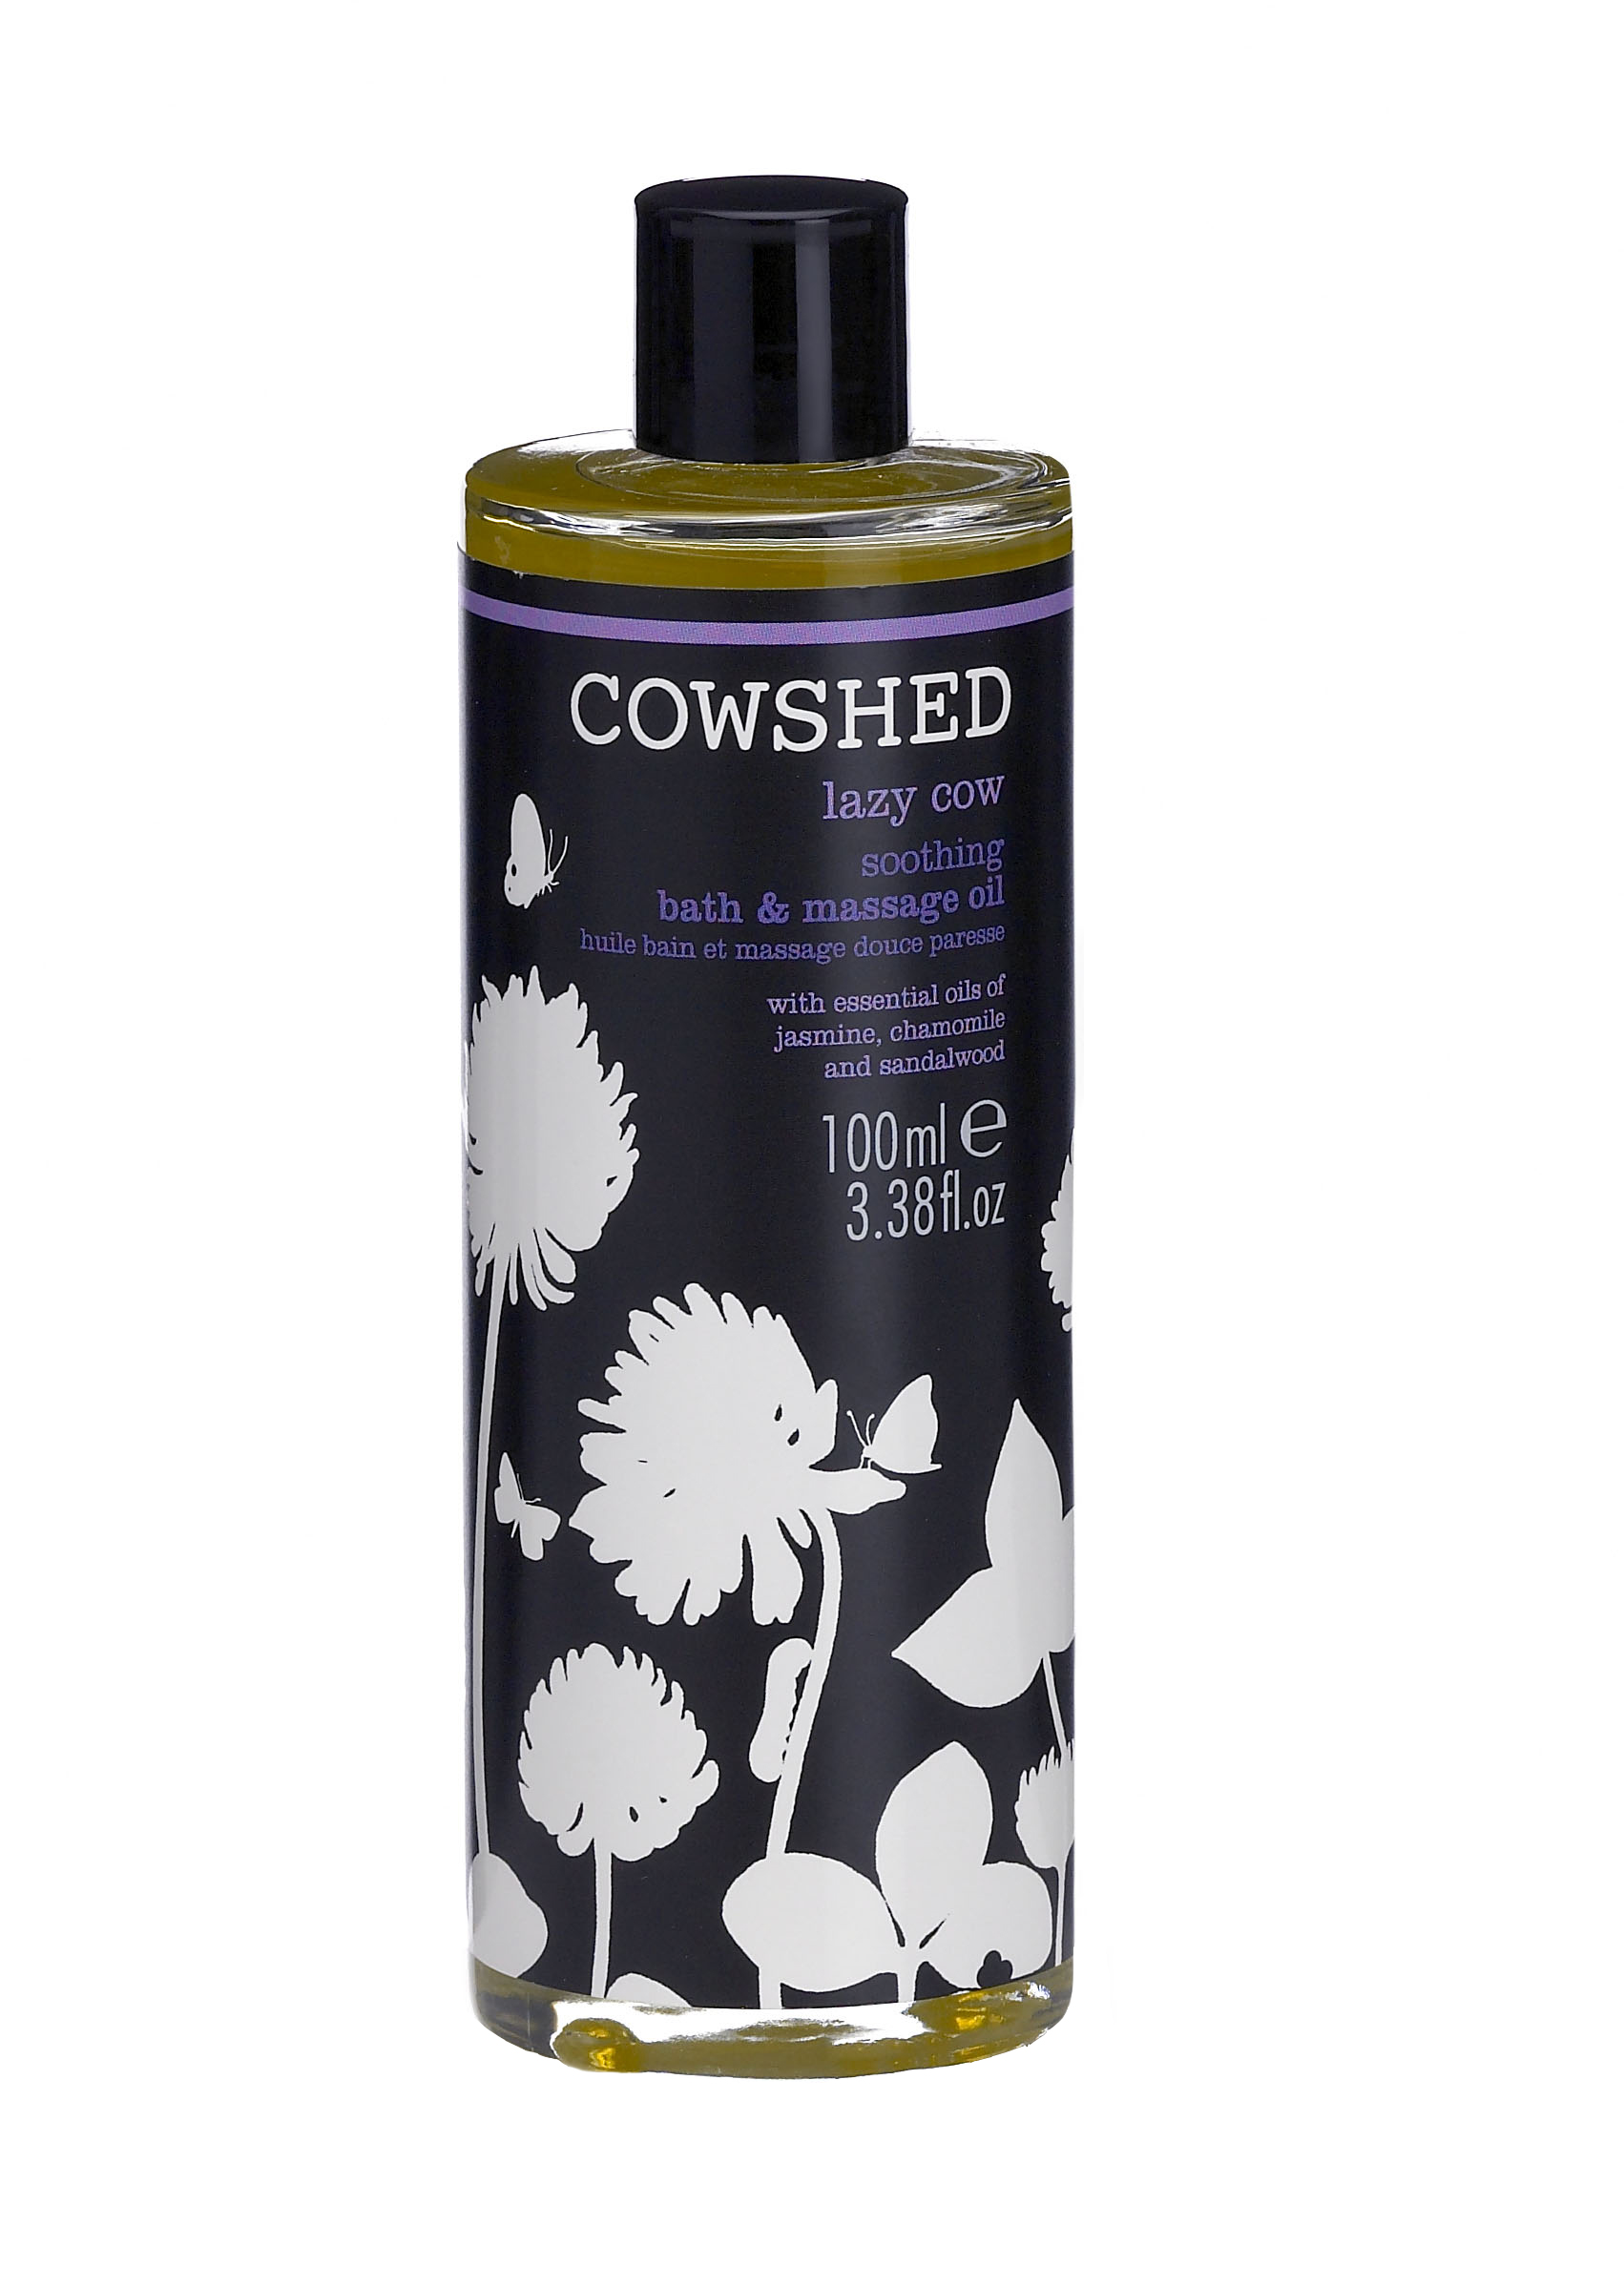 Billede af Cowshed Lazy Cow Soothing Bath & Body Oil 100 ml.